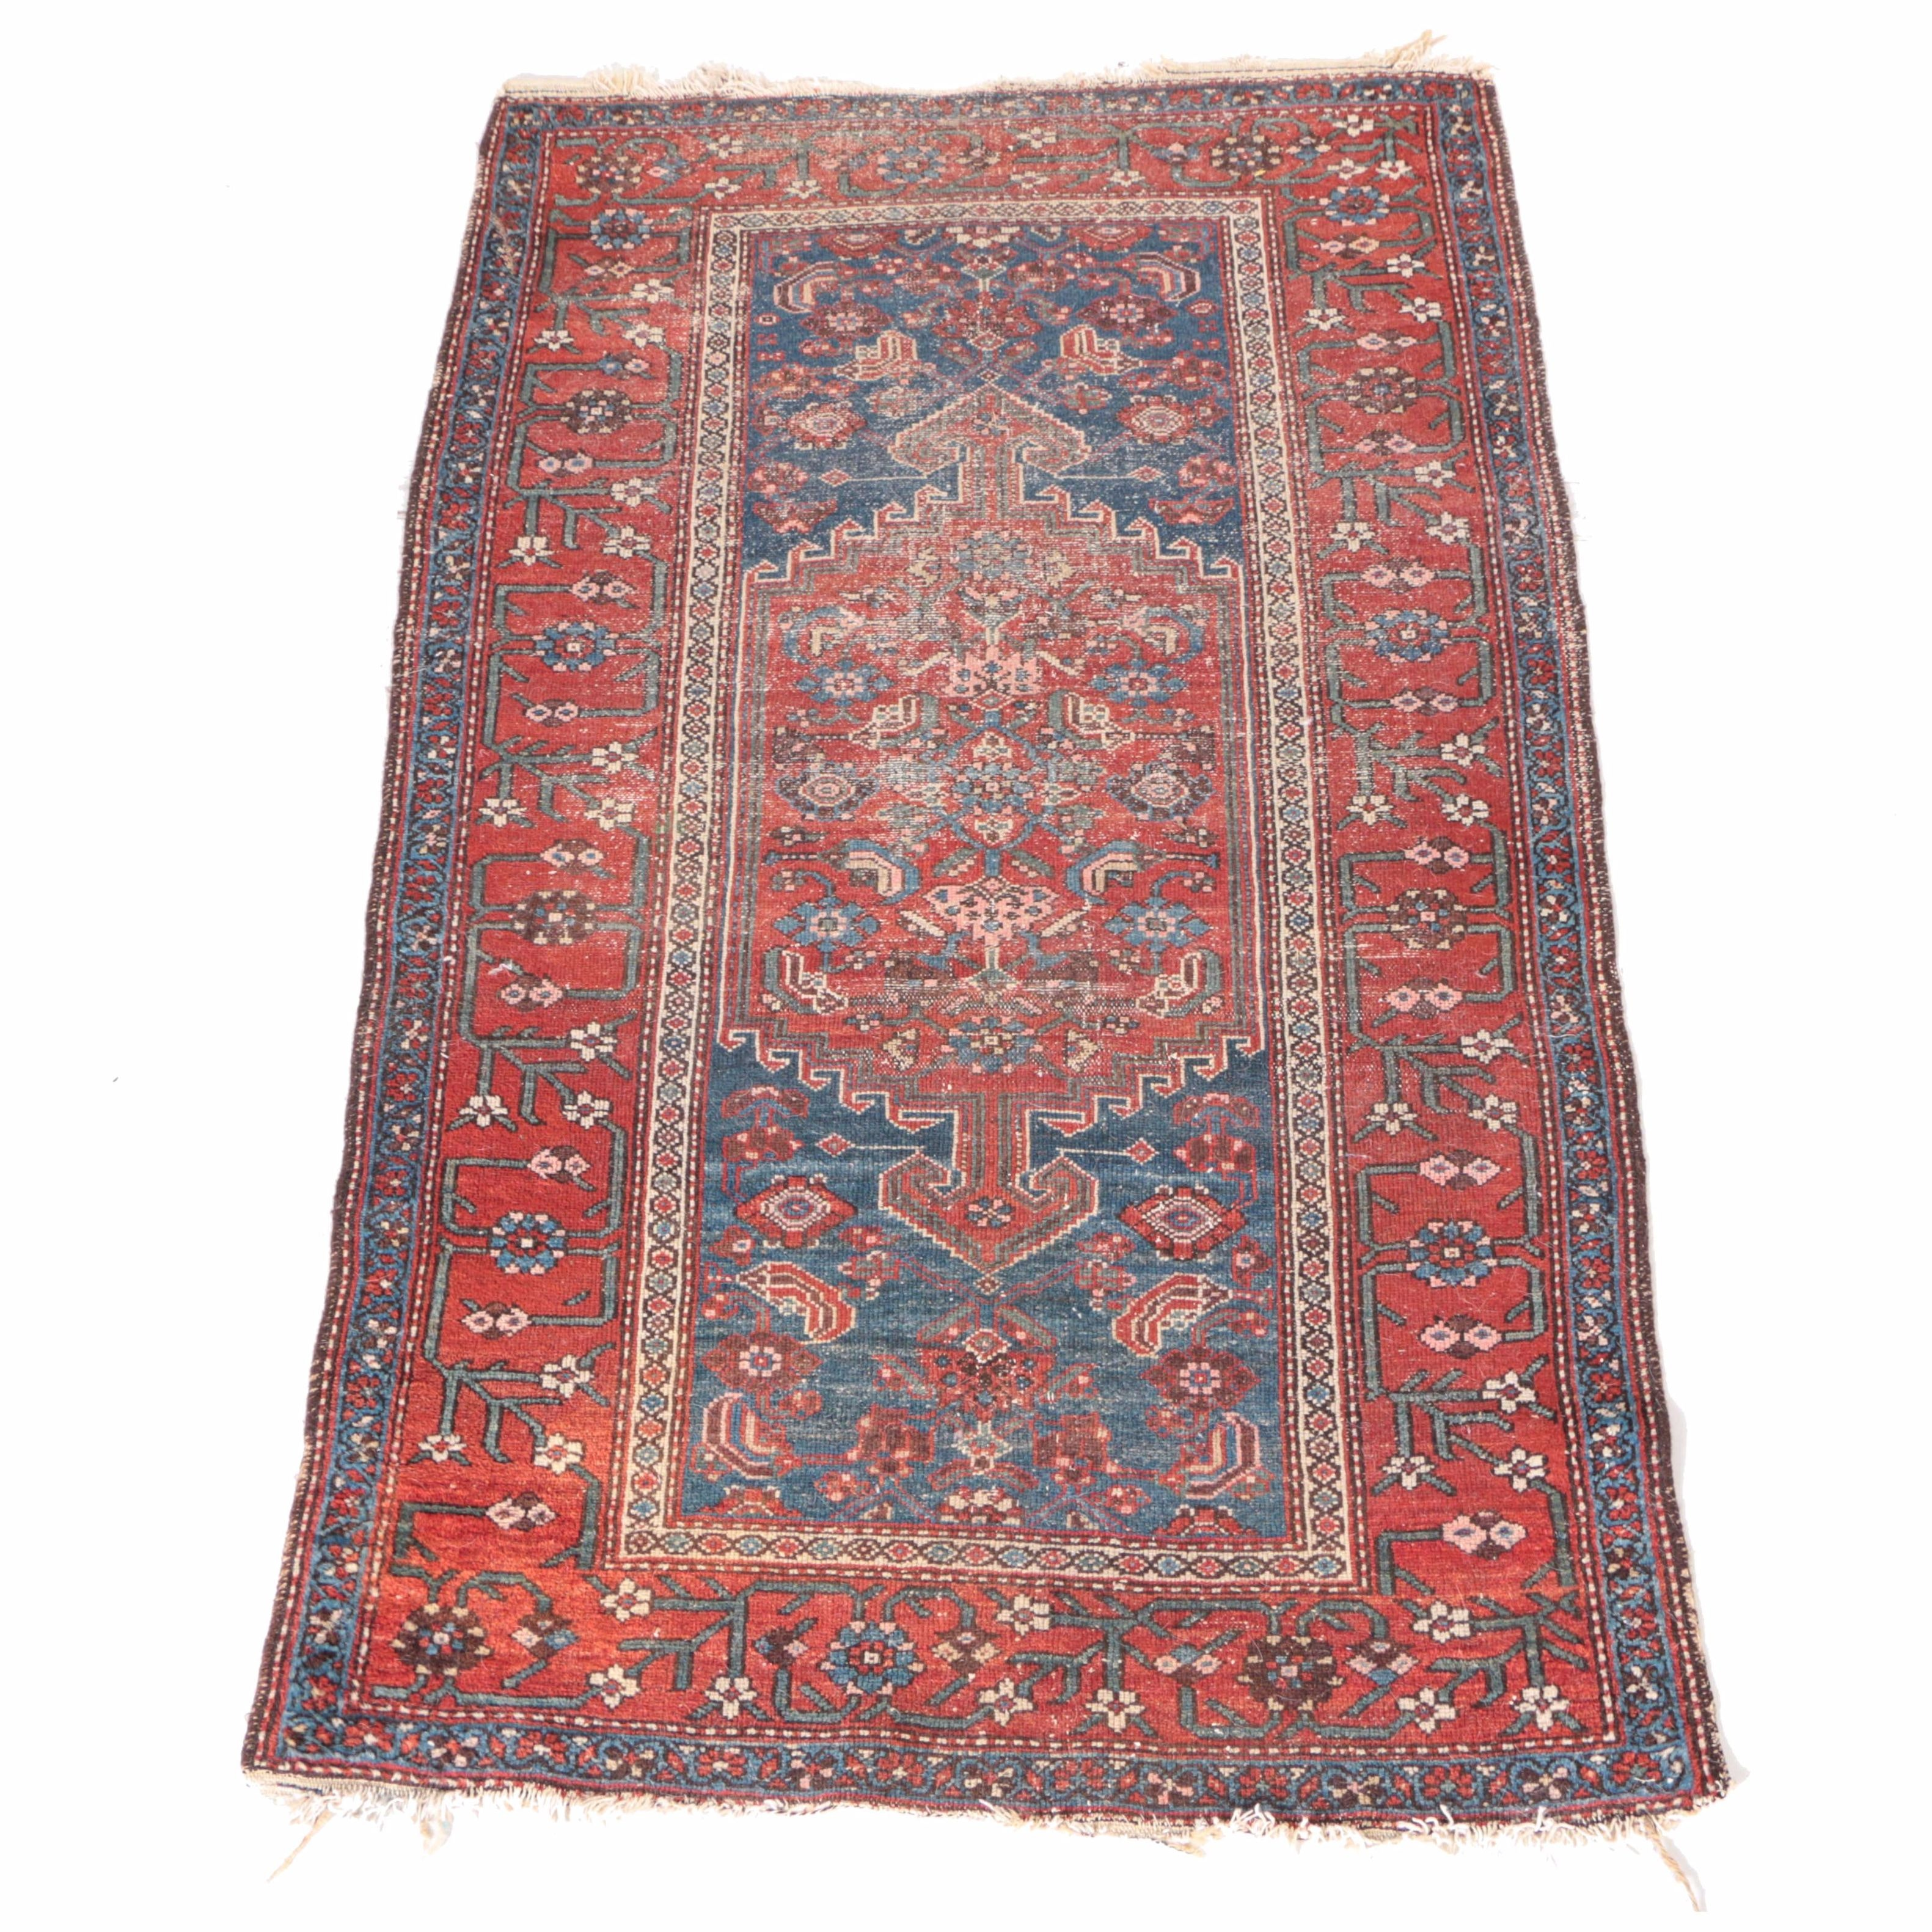 Antique Hand-Woven Persian Tribal Area Rug